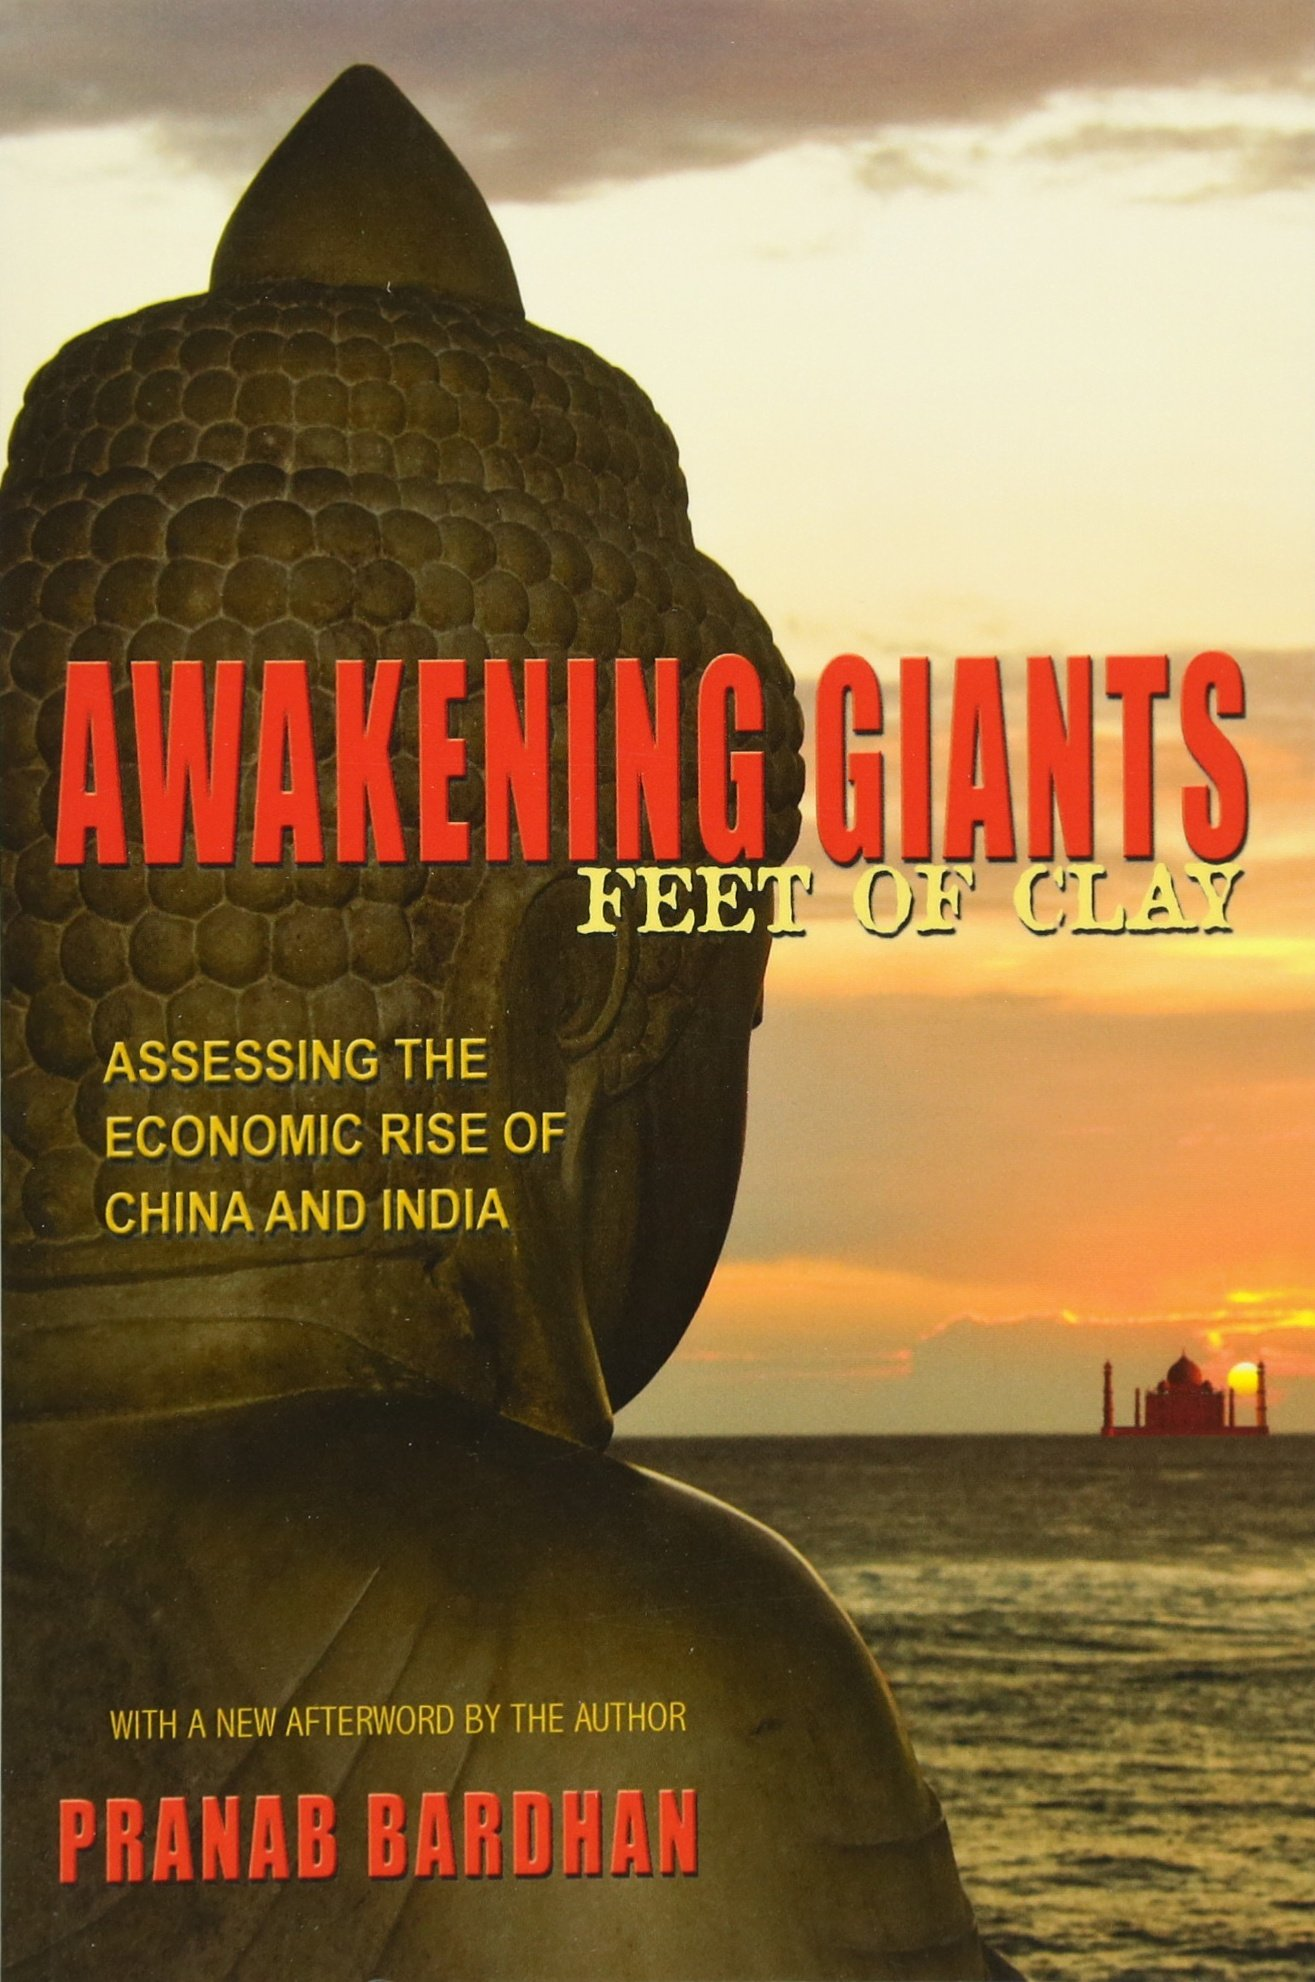 Awakening, which occurs in 40 years